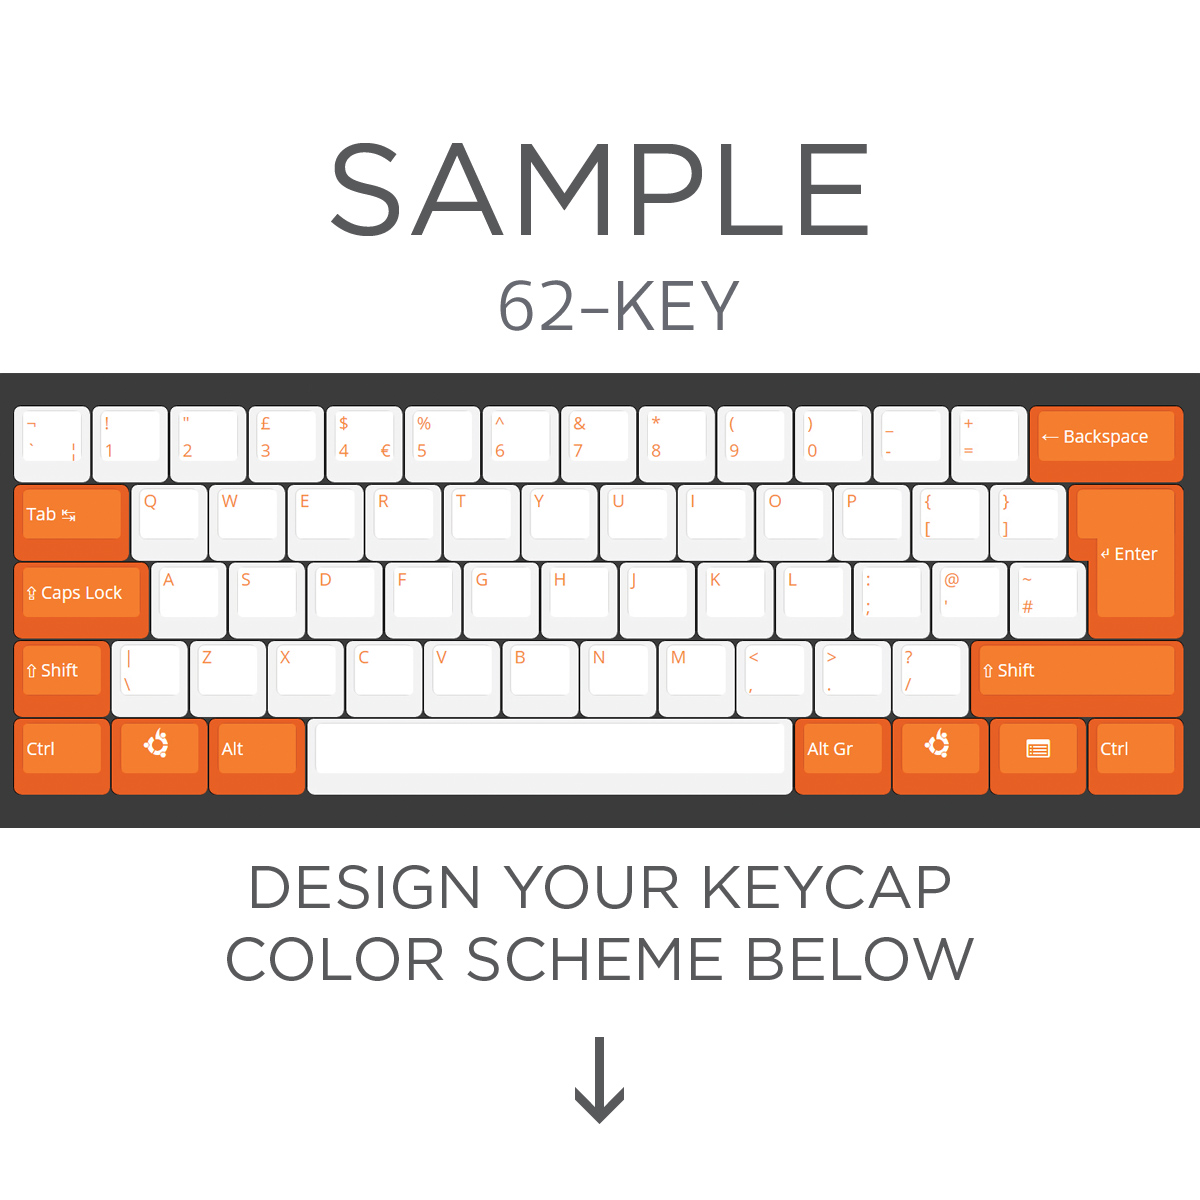 Max keyboard iso layout custom color cherry mx keycap set top max keyboard iso 62 key layout custom color cherry mx full replacement keycap set nvjuhfo Image collections